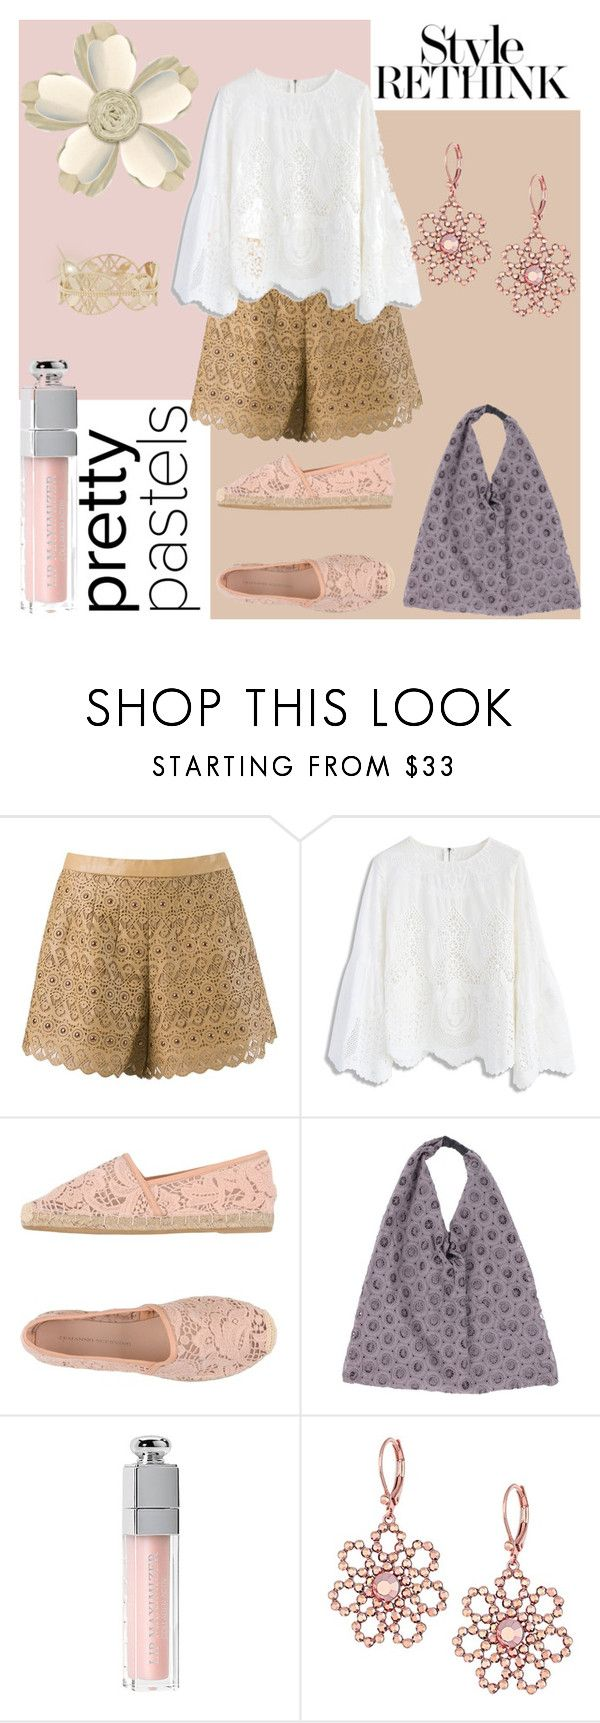 """""""Pastel Lace"""" by ladygroovenyc ❤ liked on Polyvore featuring Andrea Bogosian, Chicwish, Ermanno Scervino, Alpha Studio, Ultimate, Christian Dior, Kate Spade, Grace Lee Designs, lace and pastel"""